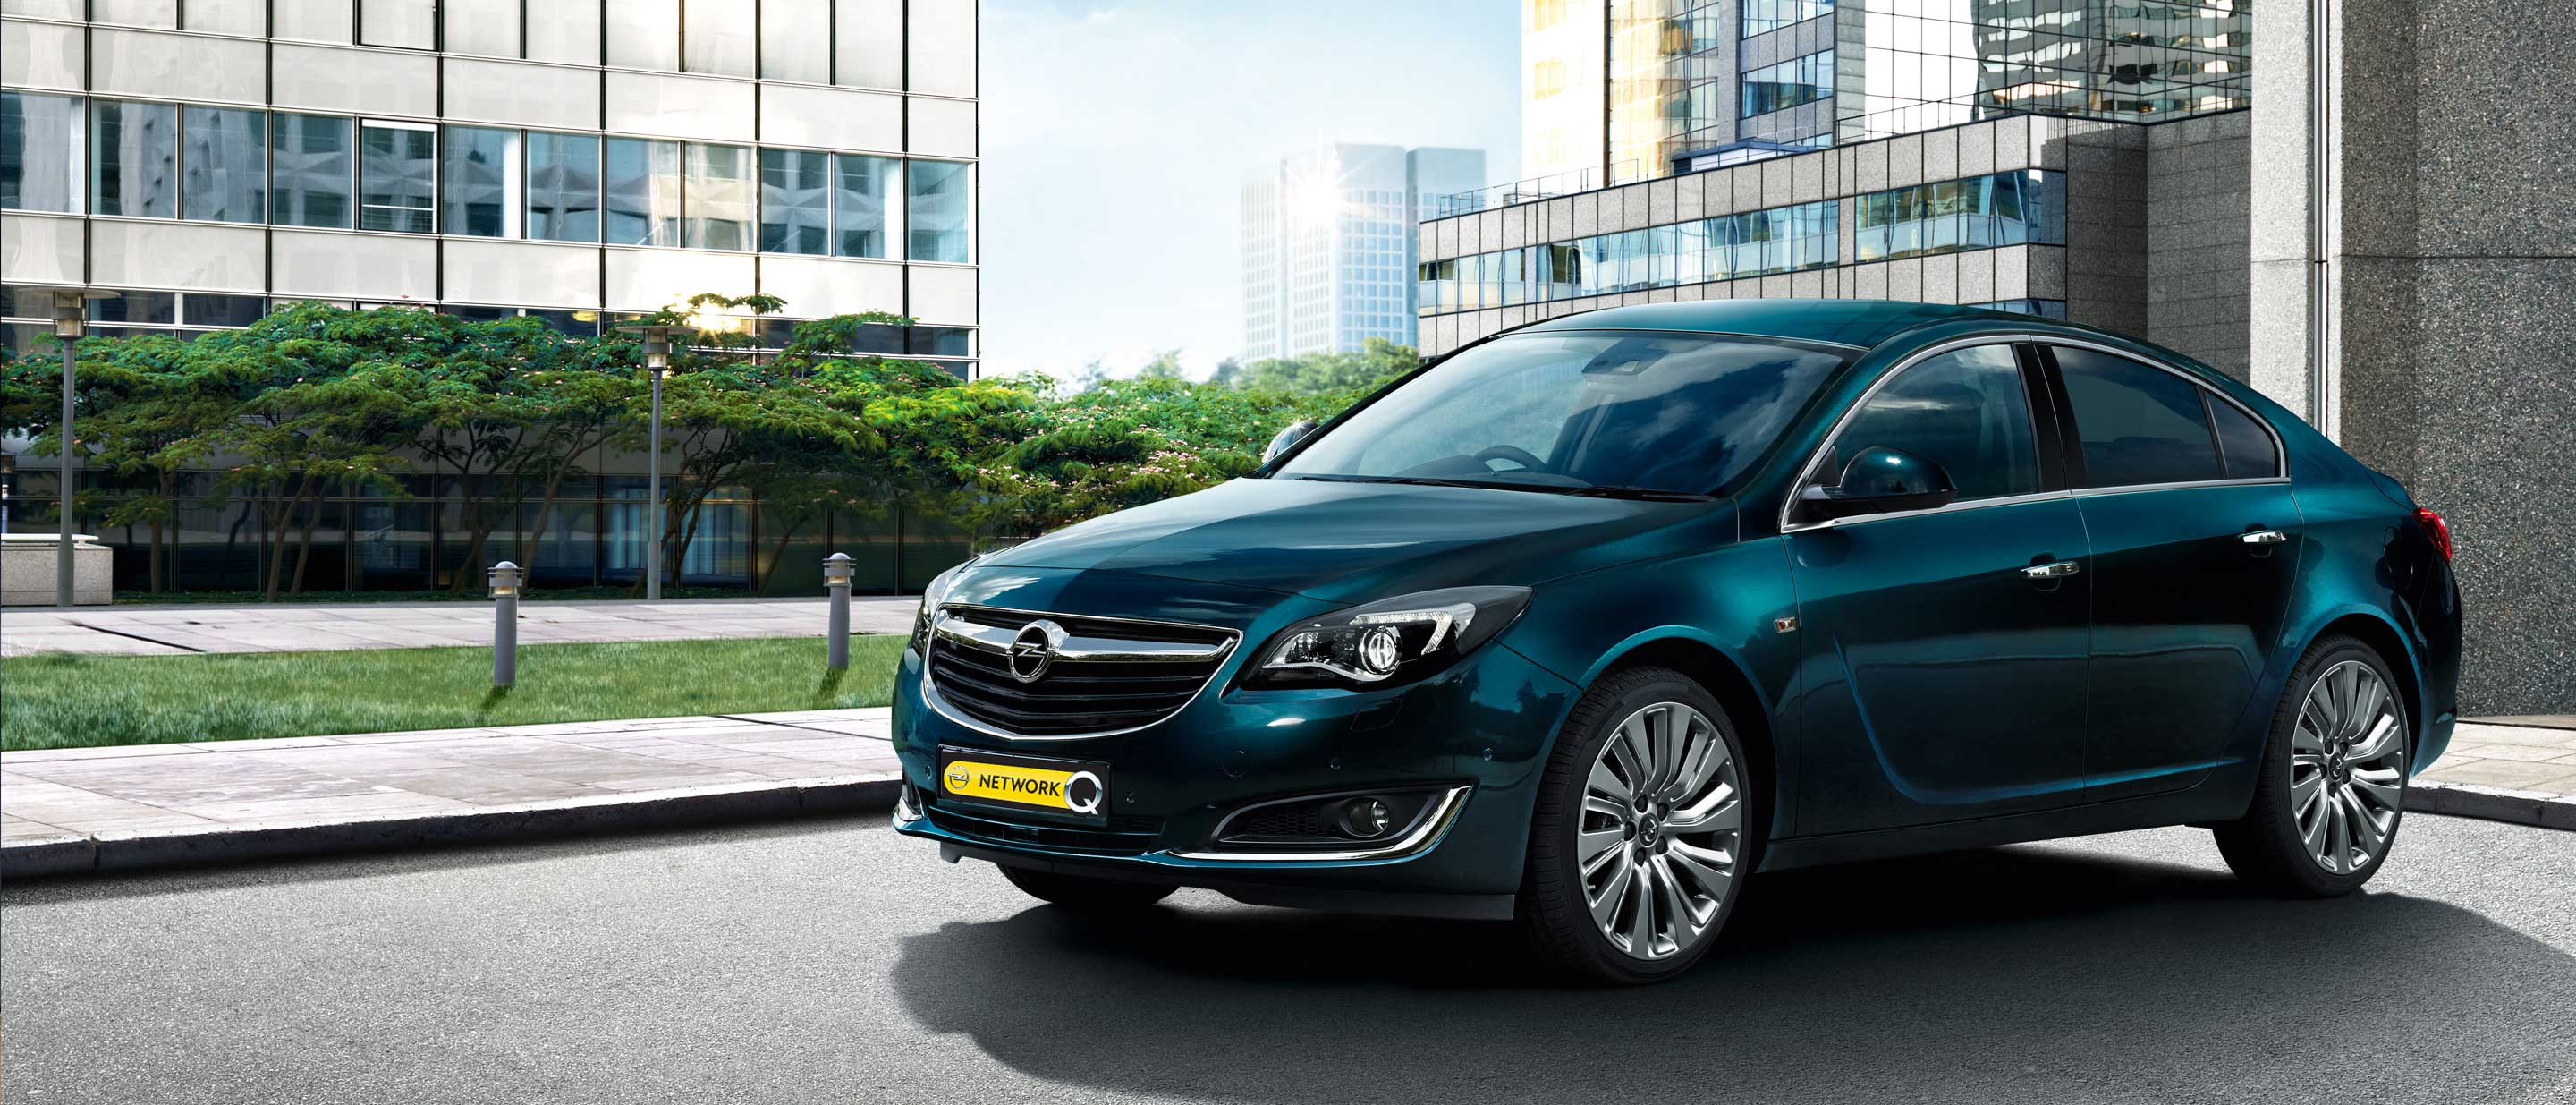 https://www.opelnetworkq.ie/wp-content/themes/automotive-standard/assets/images/new_banner04_lg.jpg